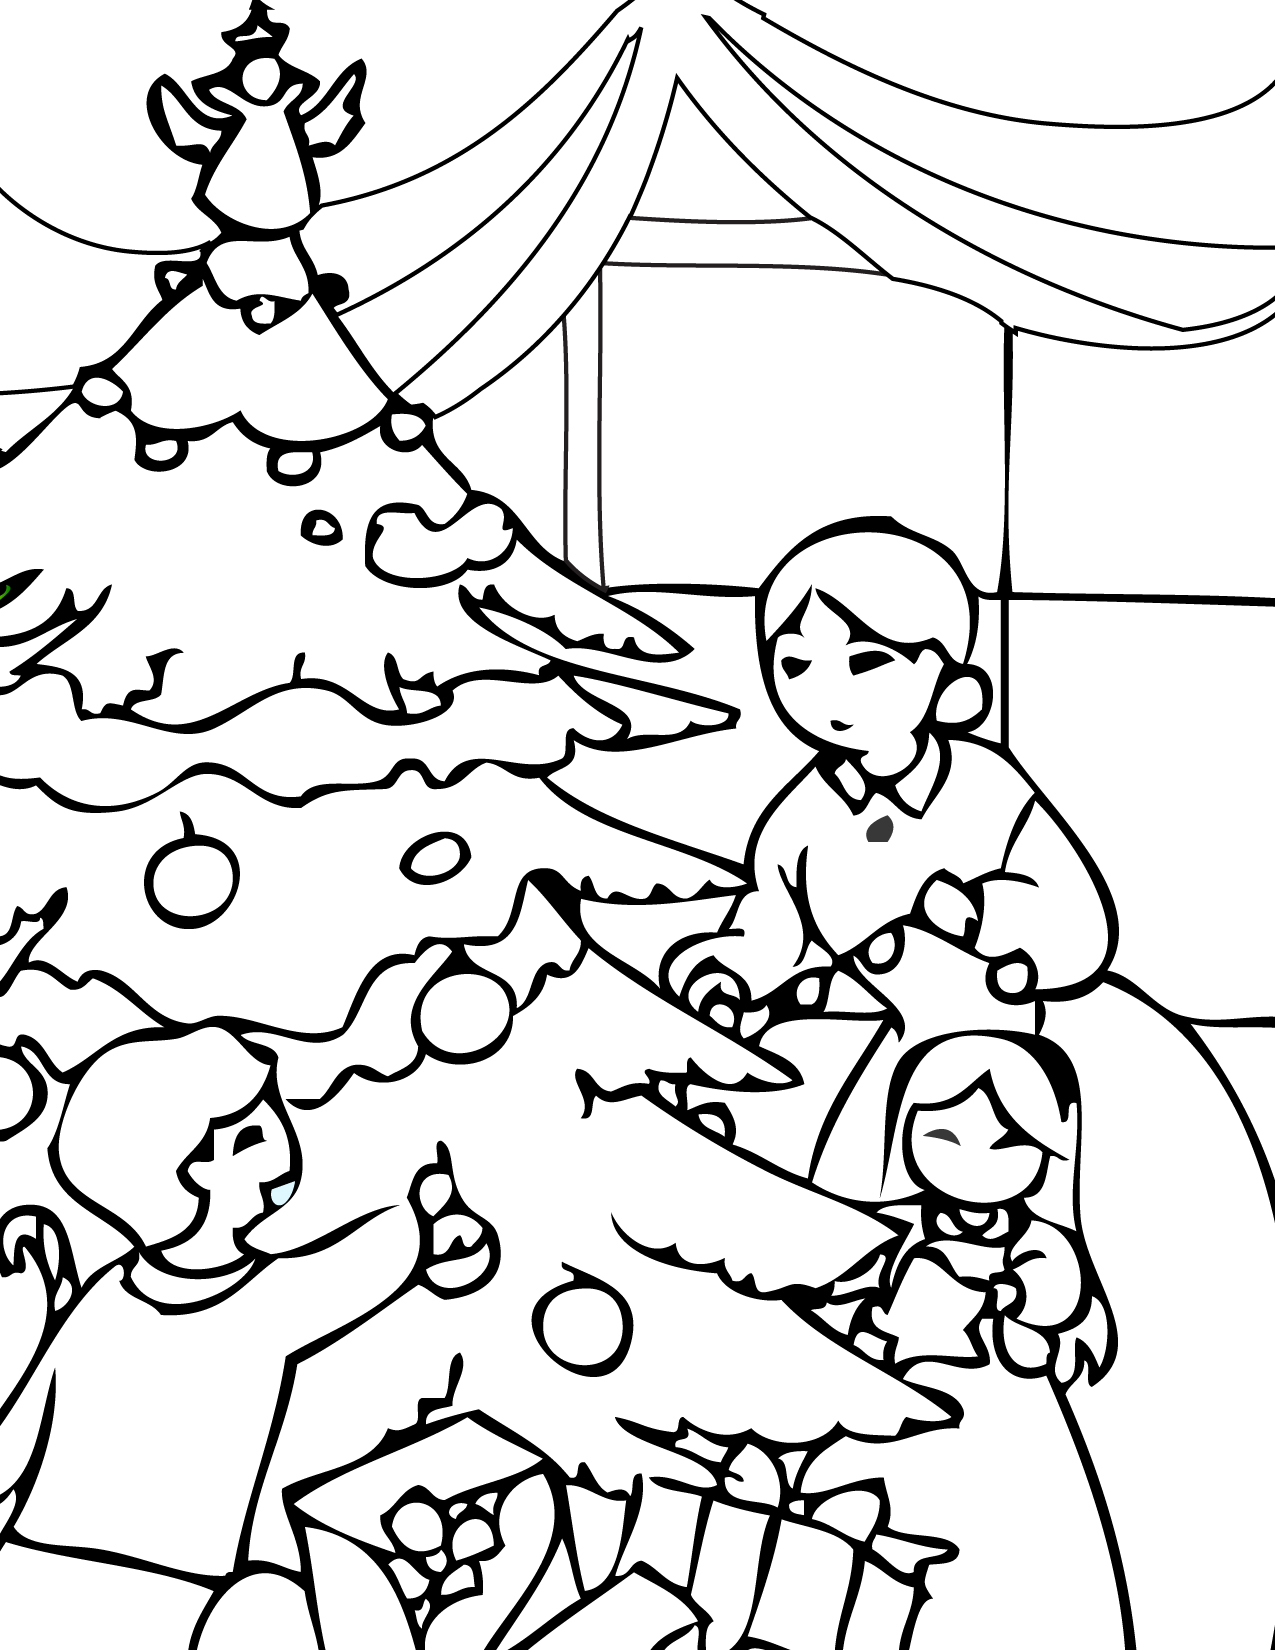 1275x1650 Christmas Family Free Coloring Page Christmas, Holidays Coloring